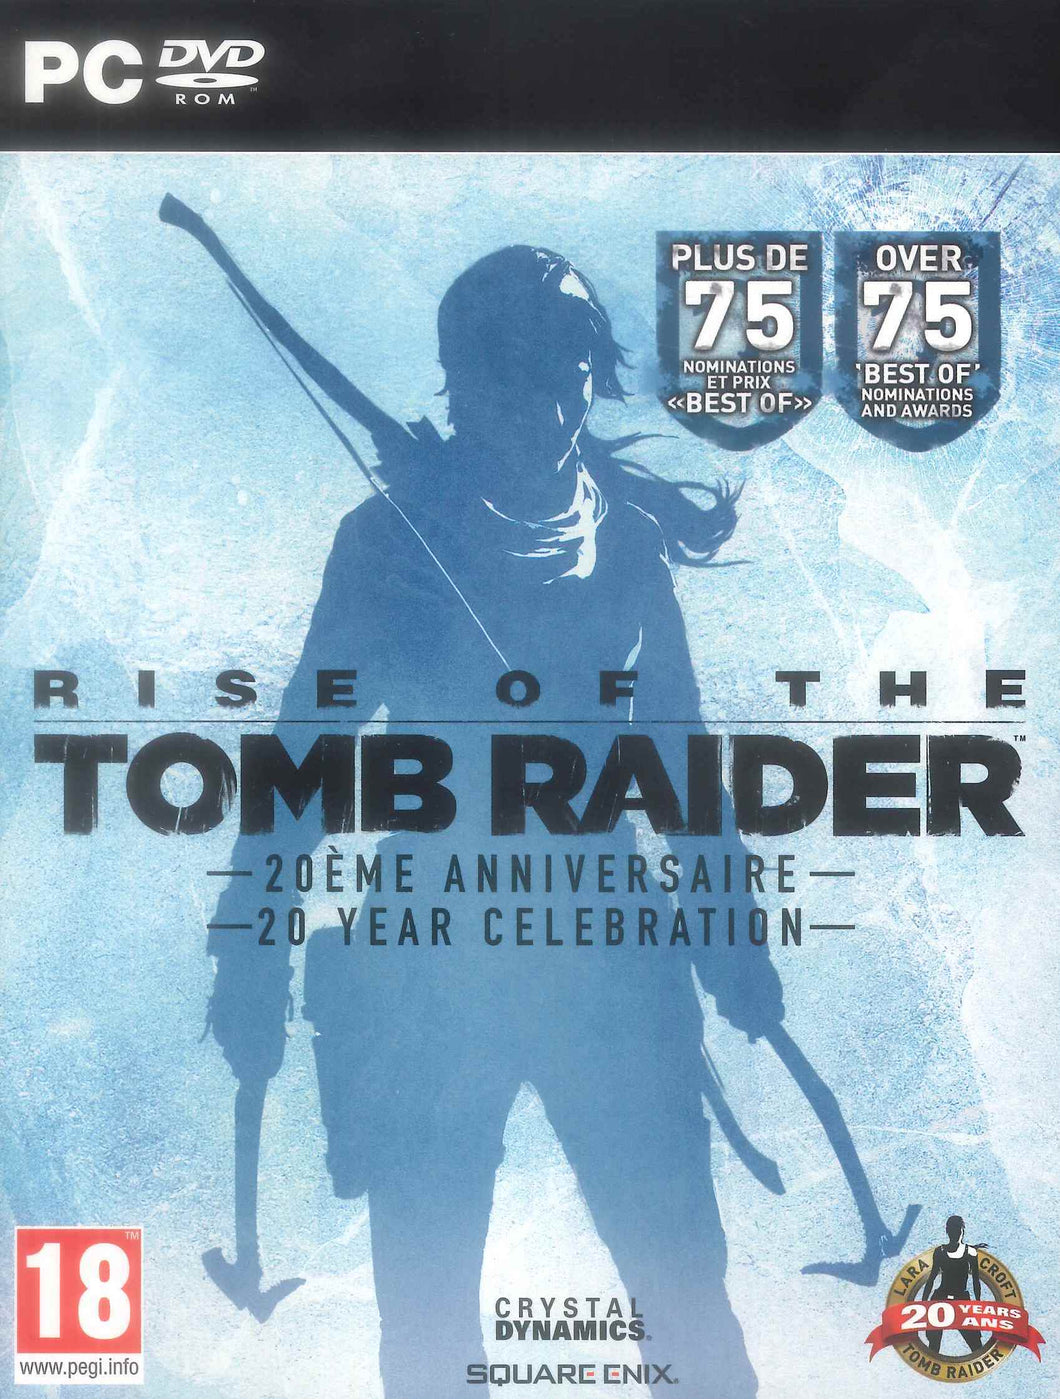 Rise of the Tomb Raider - 20 Year Anniversary - ARTBOOK EDITION